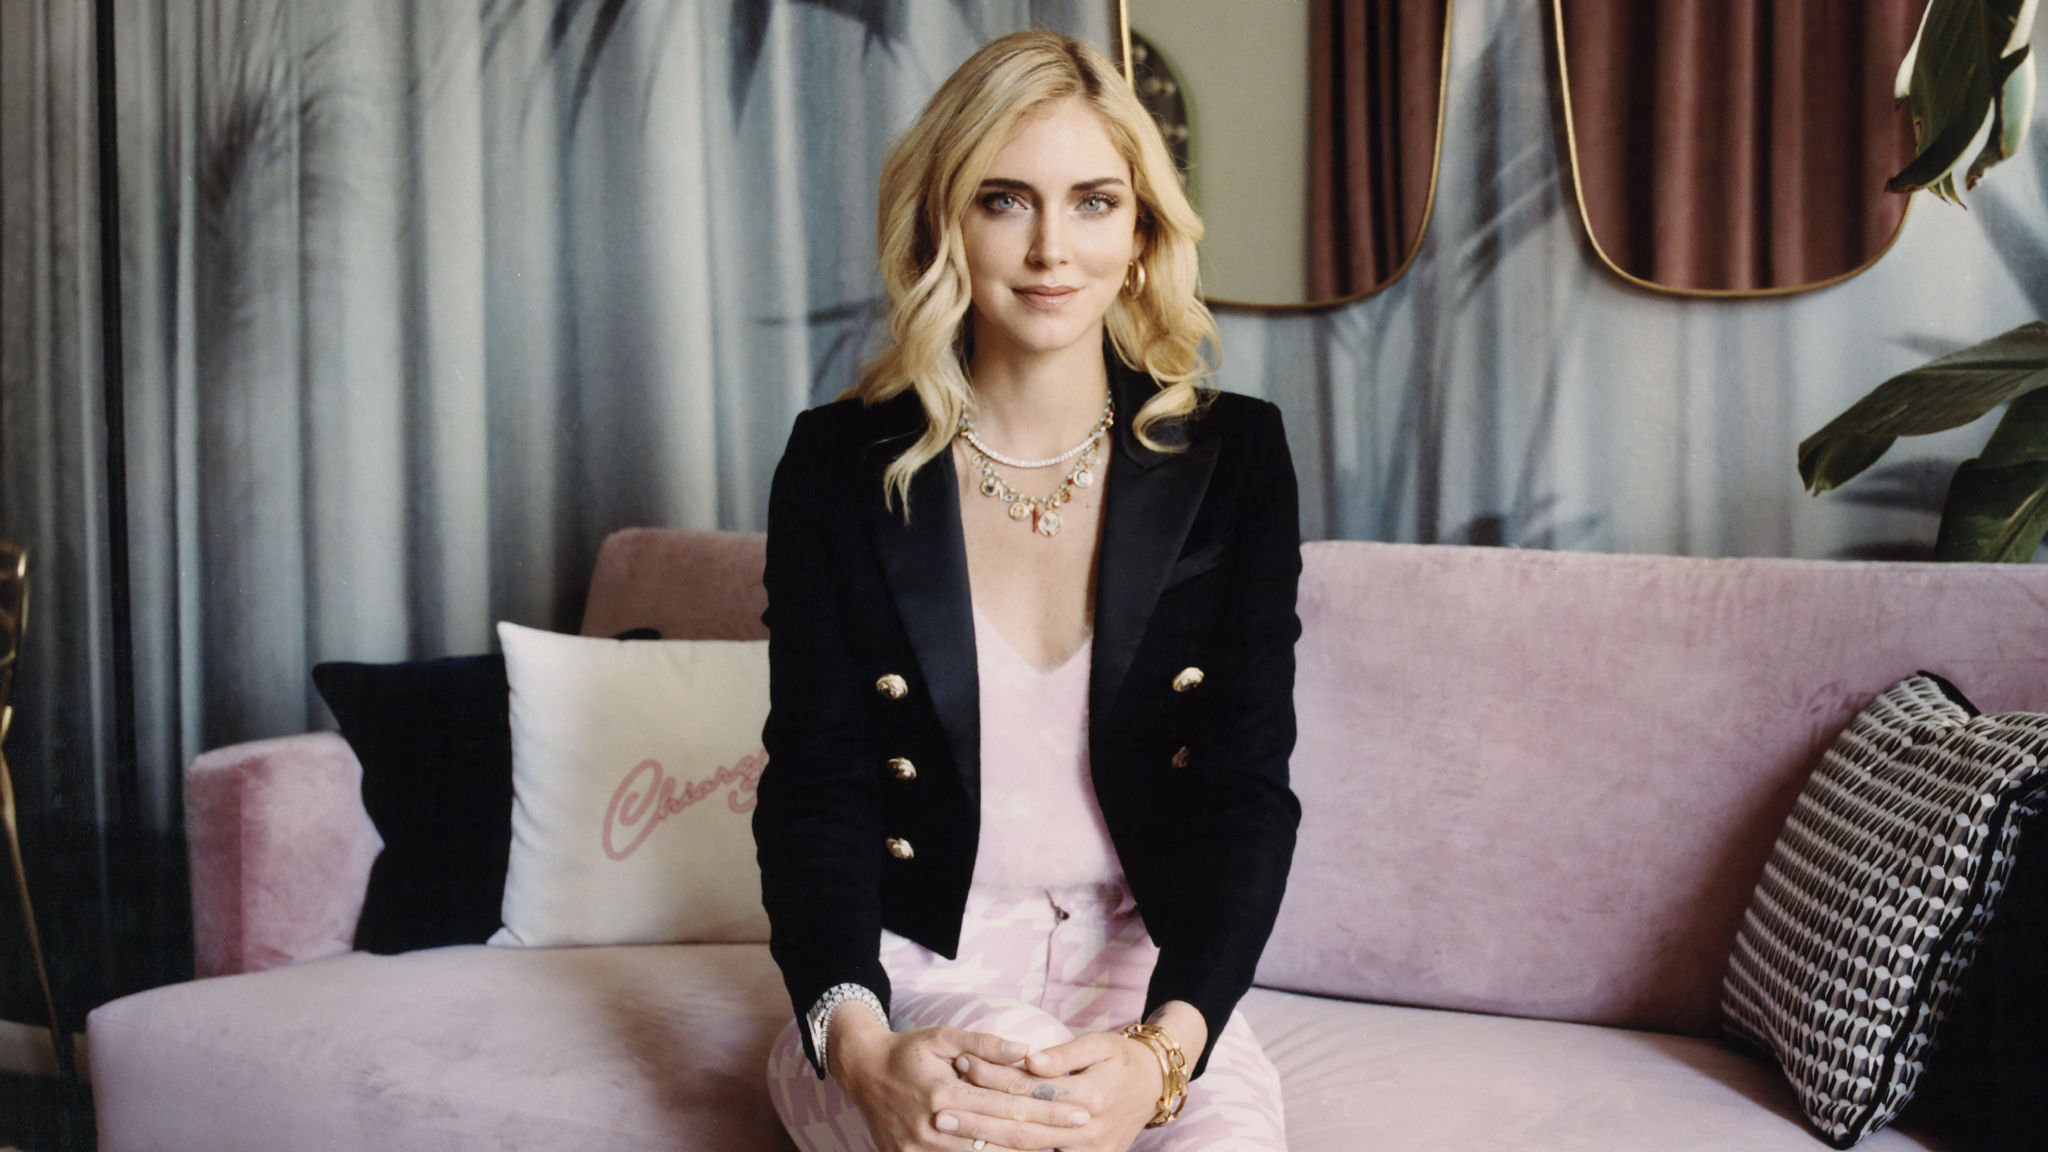 Chiara Ferragni — the Italian influencer who built a global